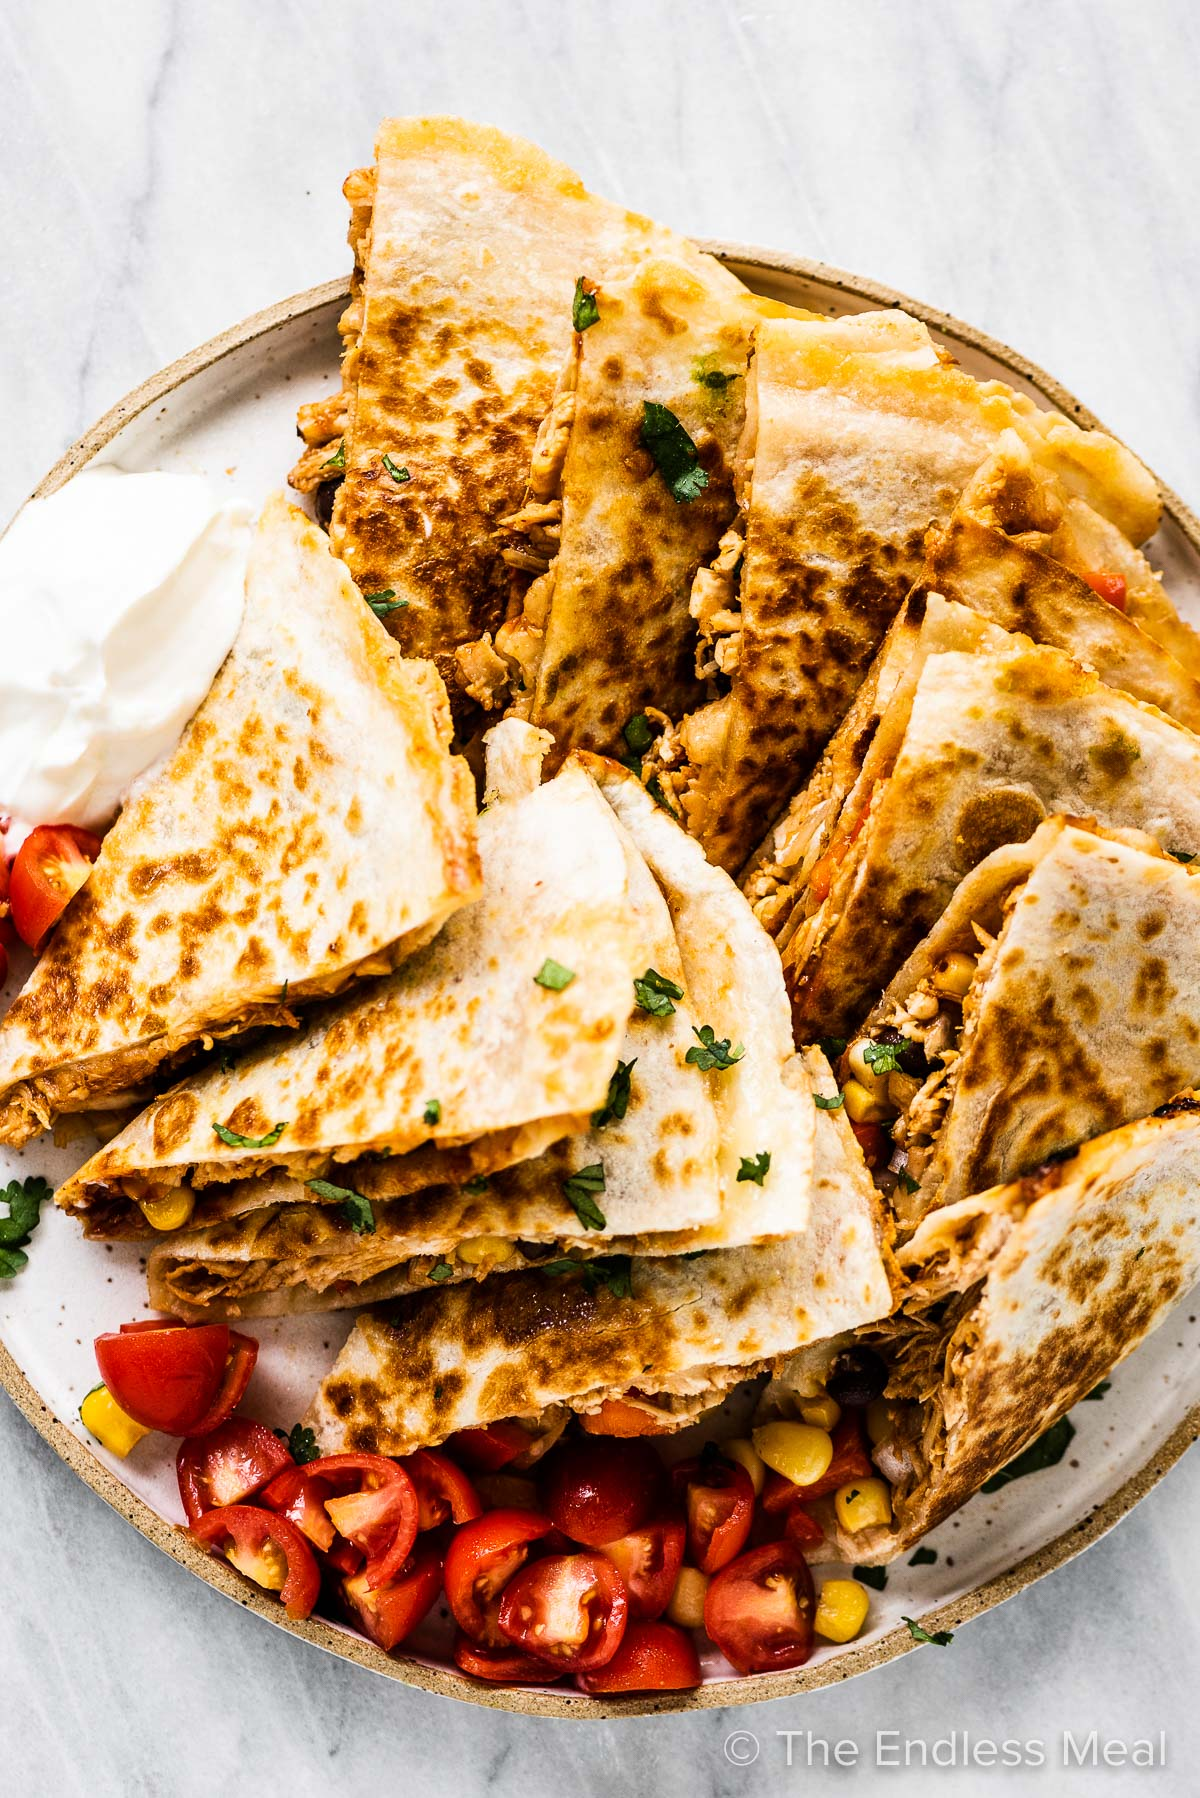 A plate piled high with bbq chicken quesadillas with salsa and sour cream on the side.